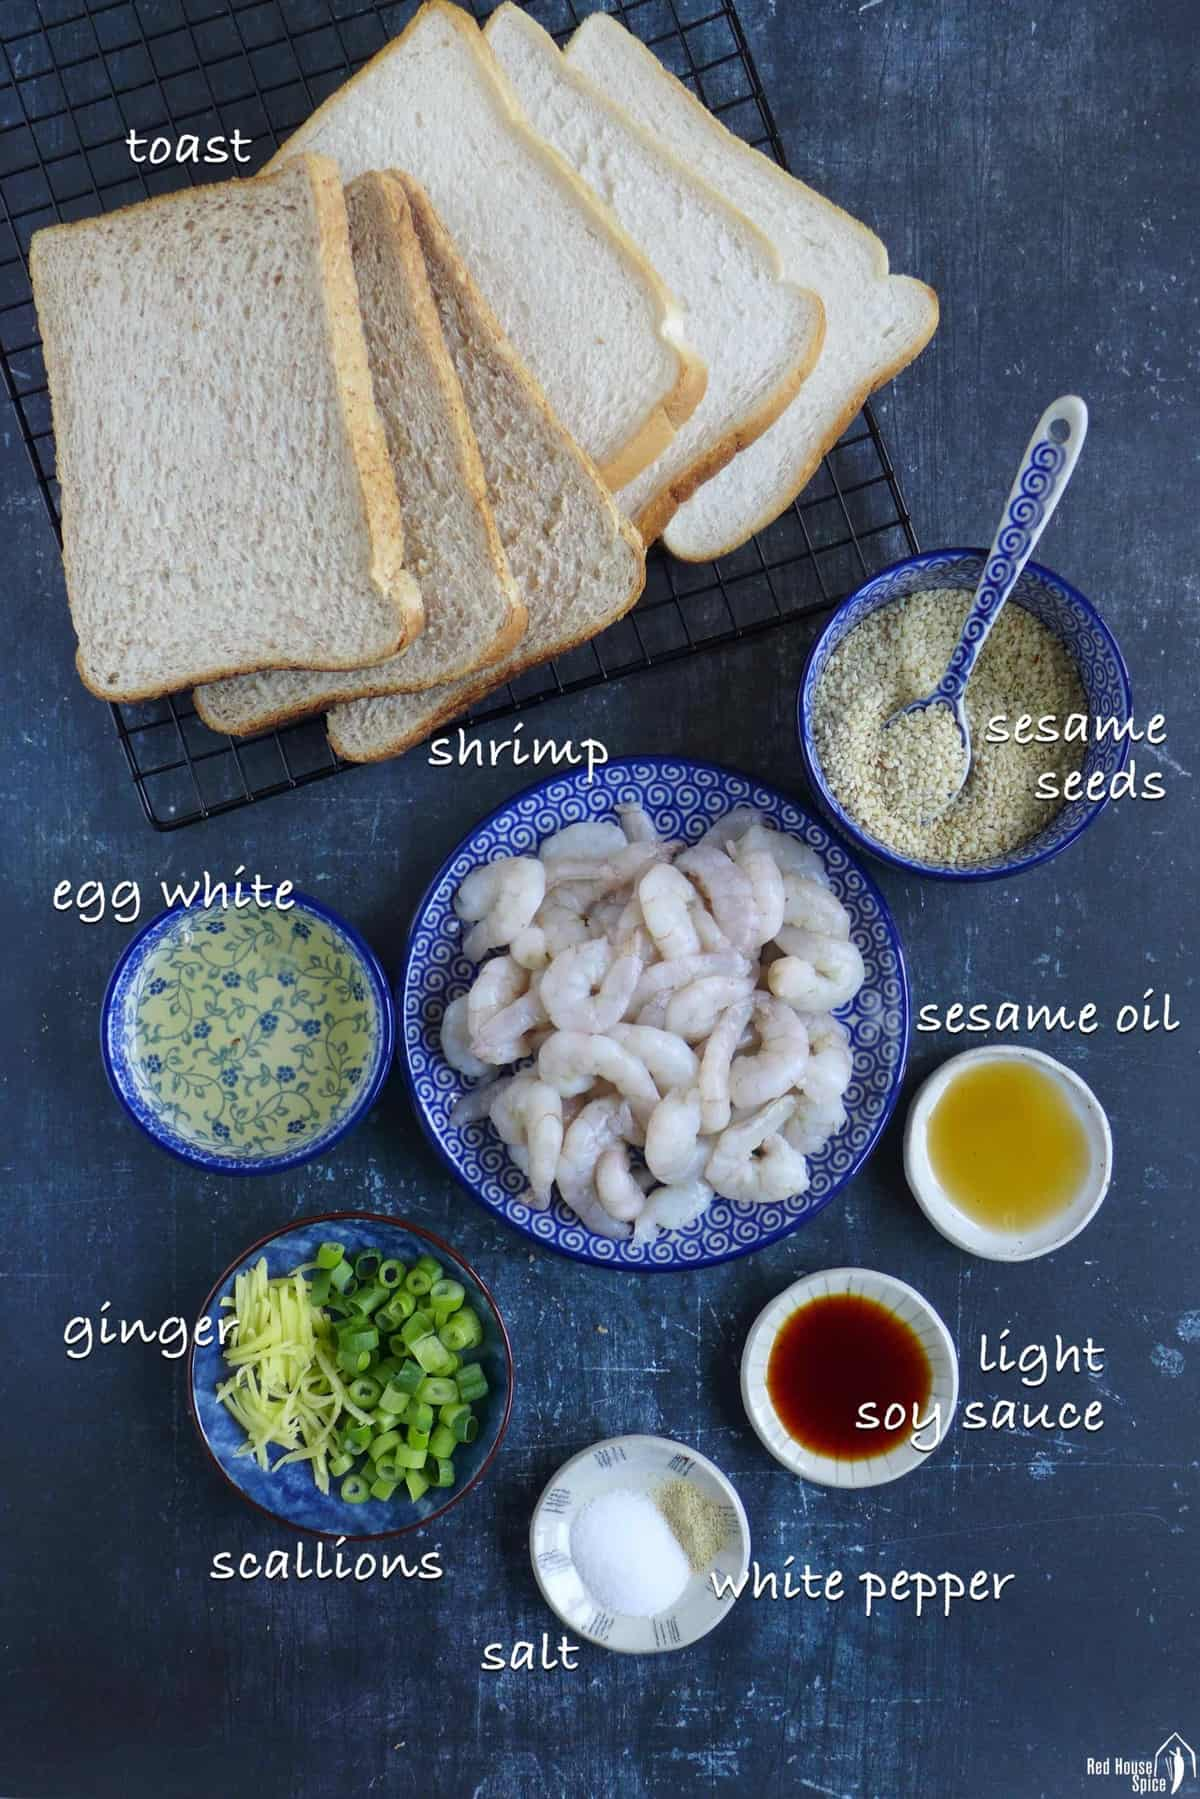 all the ingredients for making shrimp toast